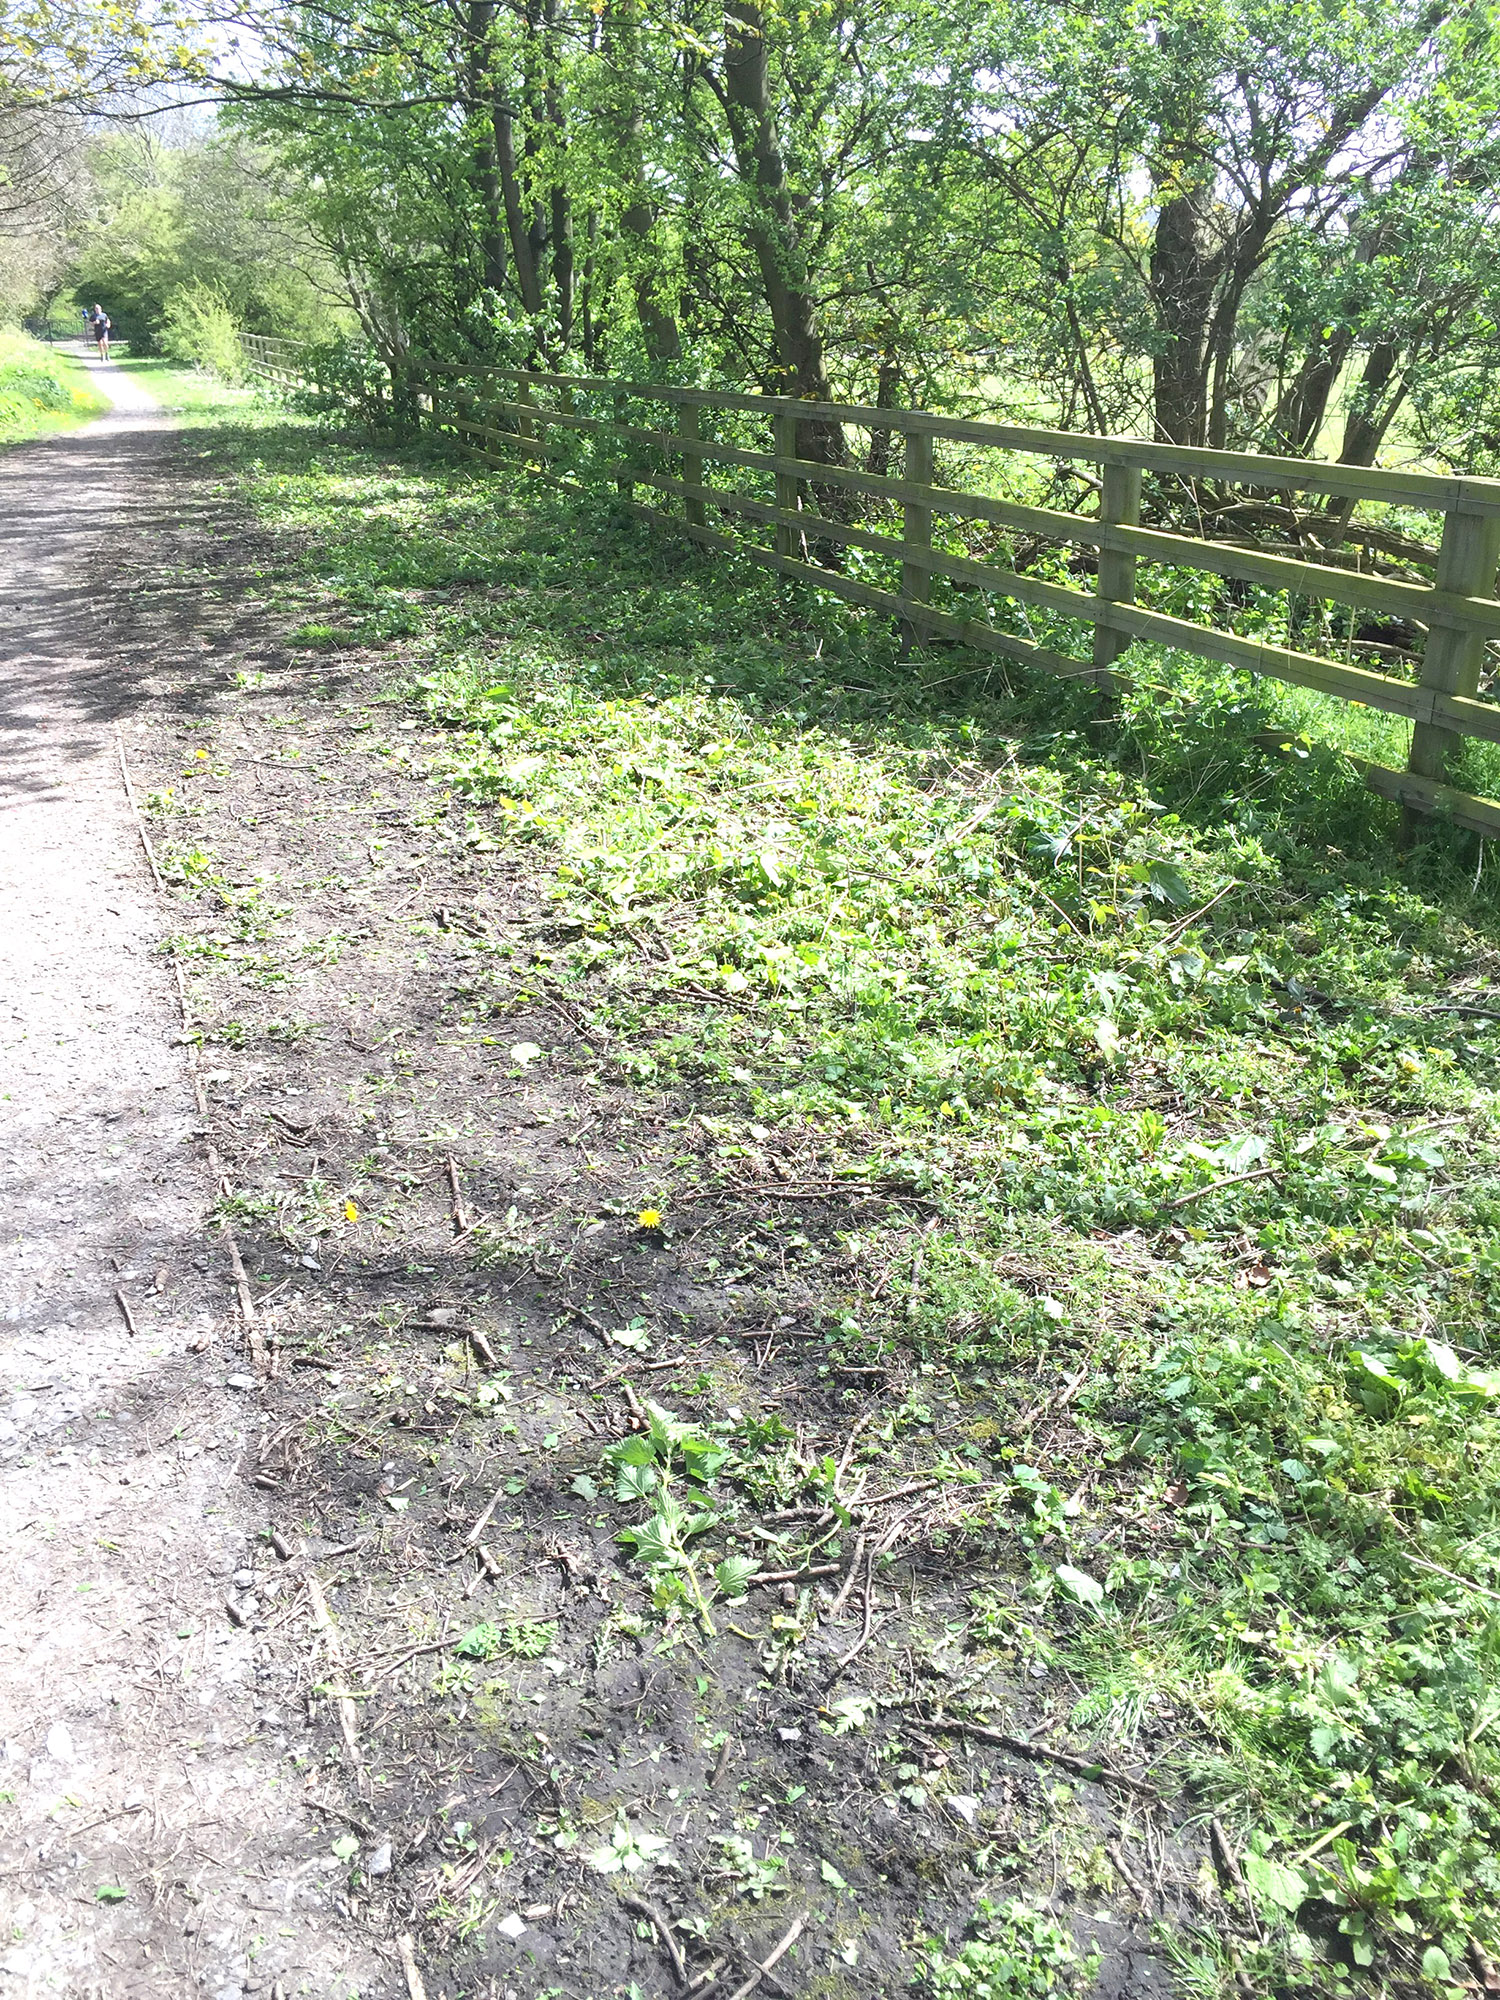 Probation Service Ruins Town Nature Trail